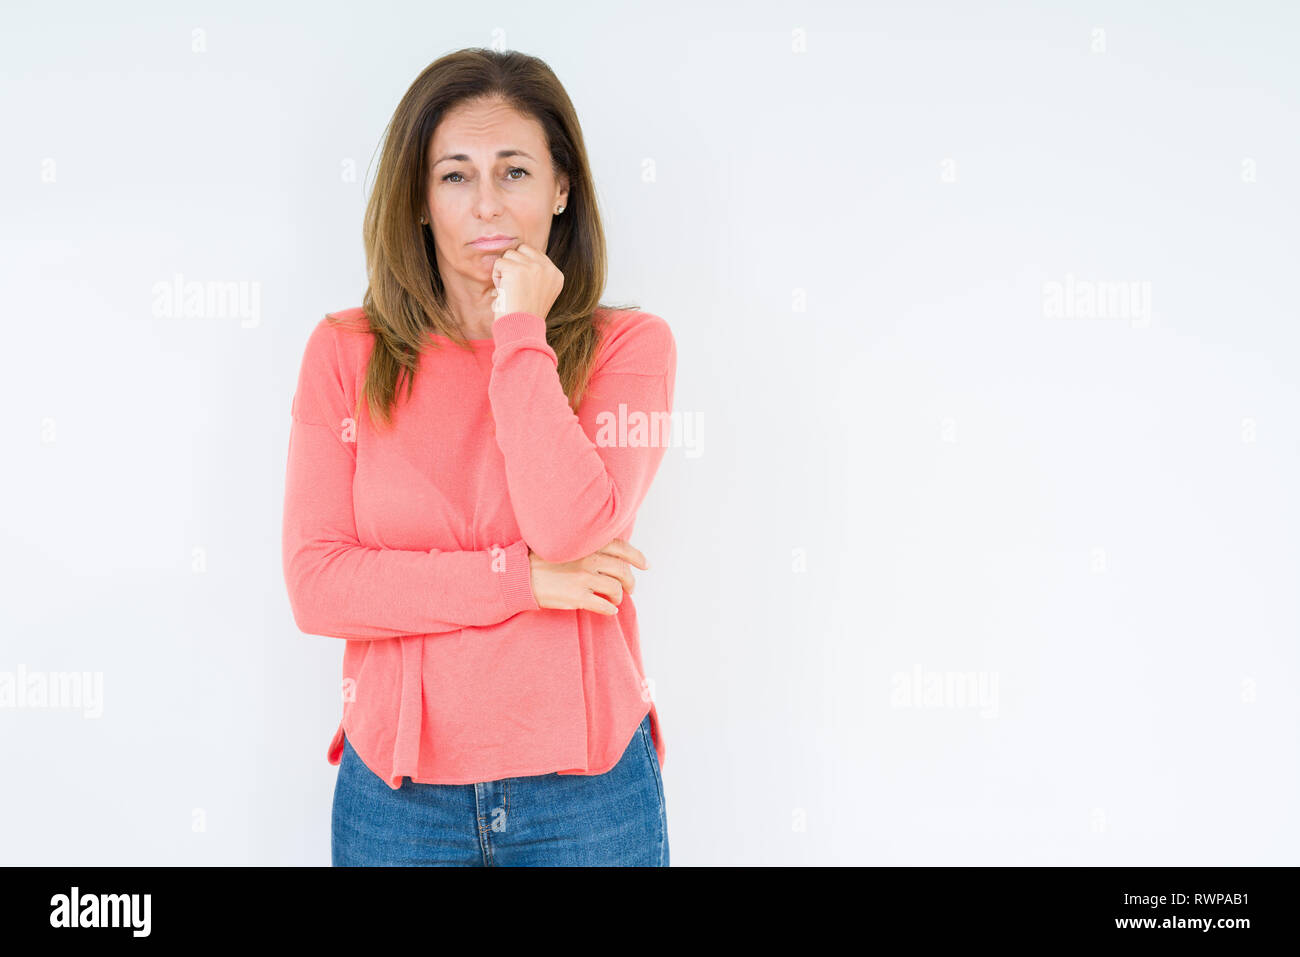 f3007741e Beautiful middle age woman over isolated background thinking looking tired  and bored with depression problems with crossed arms.